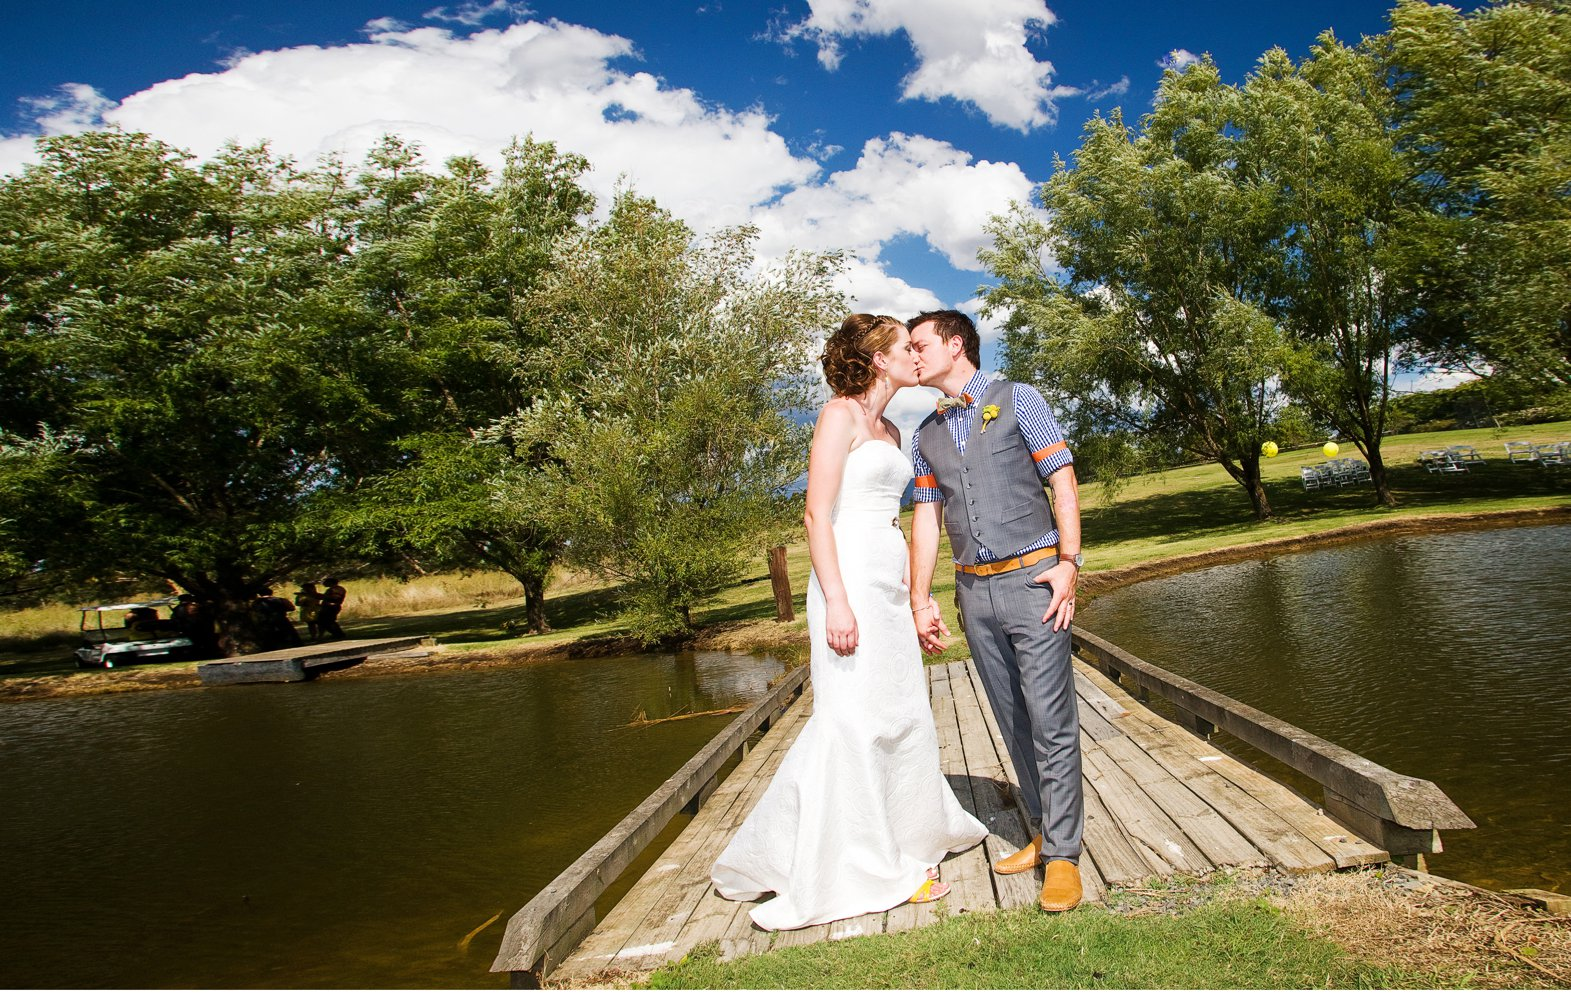 wedding albums designed for Perth with Passion